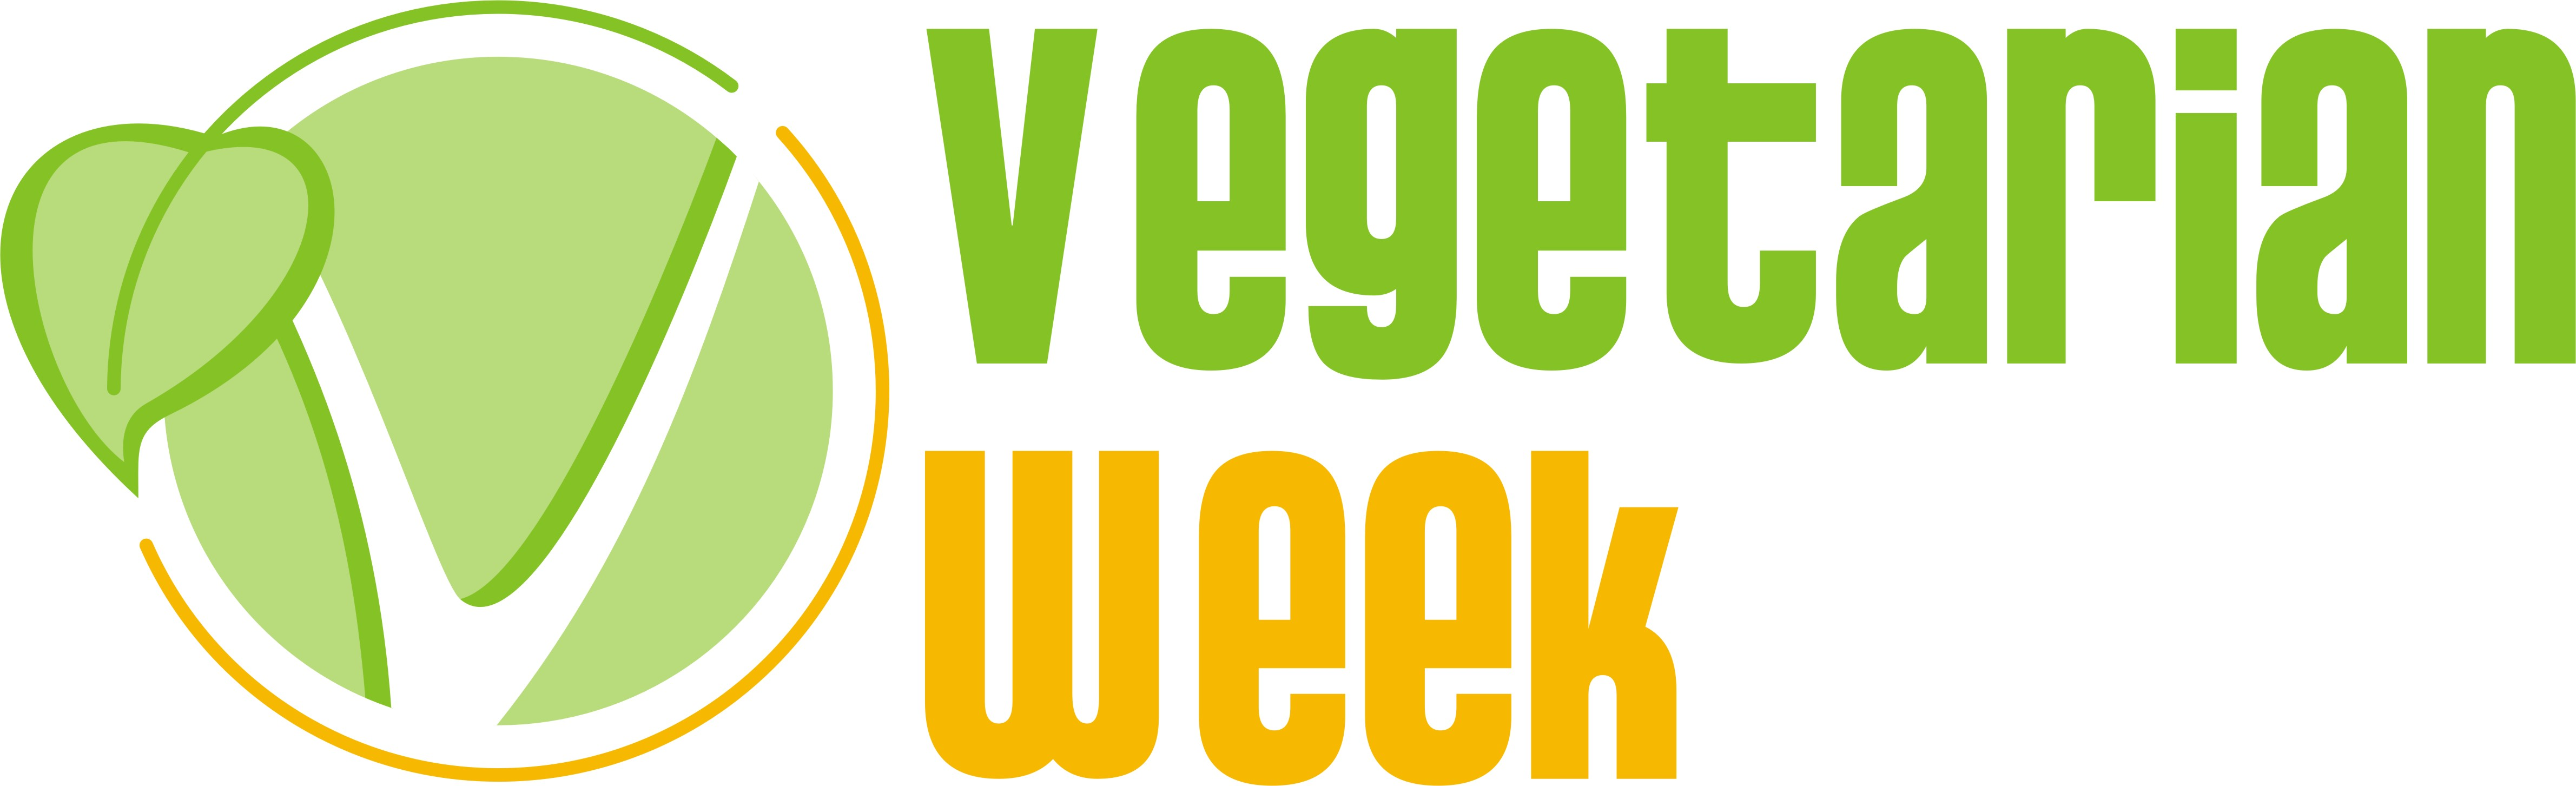 V and leaf of the Vegetarian Week